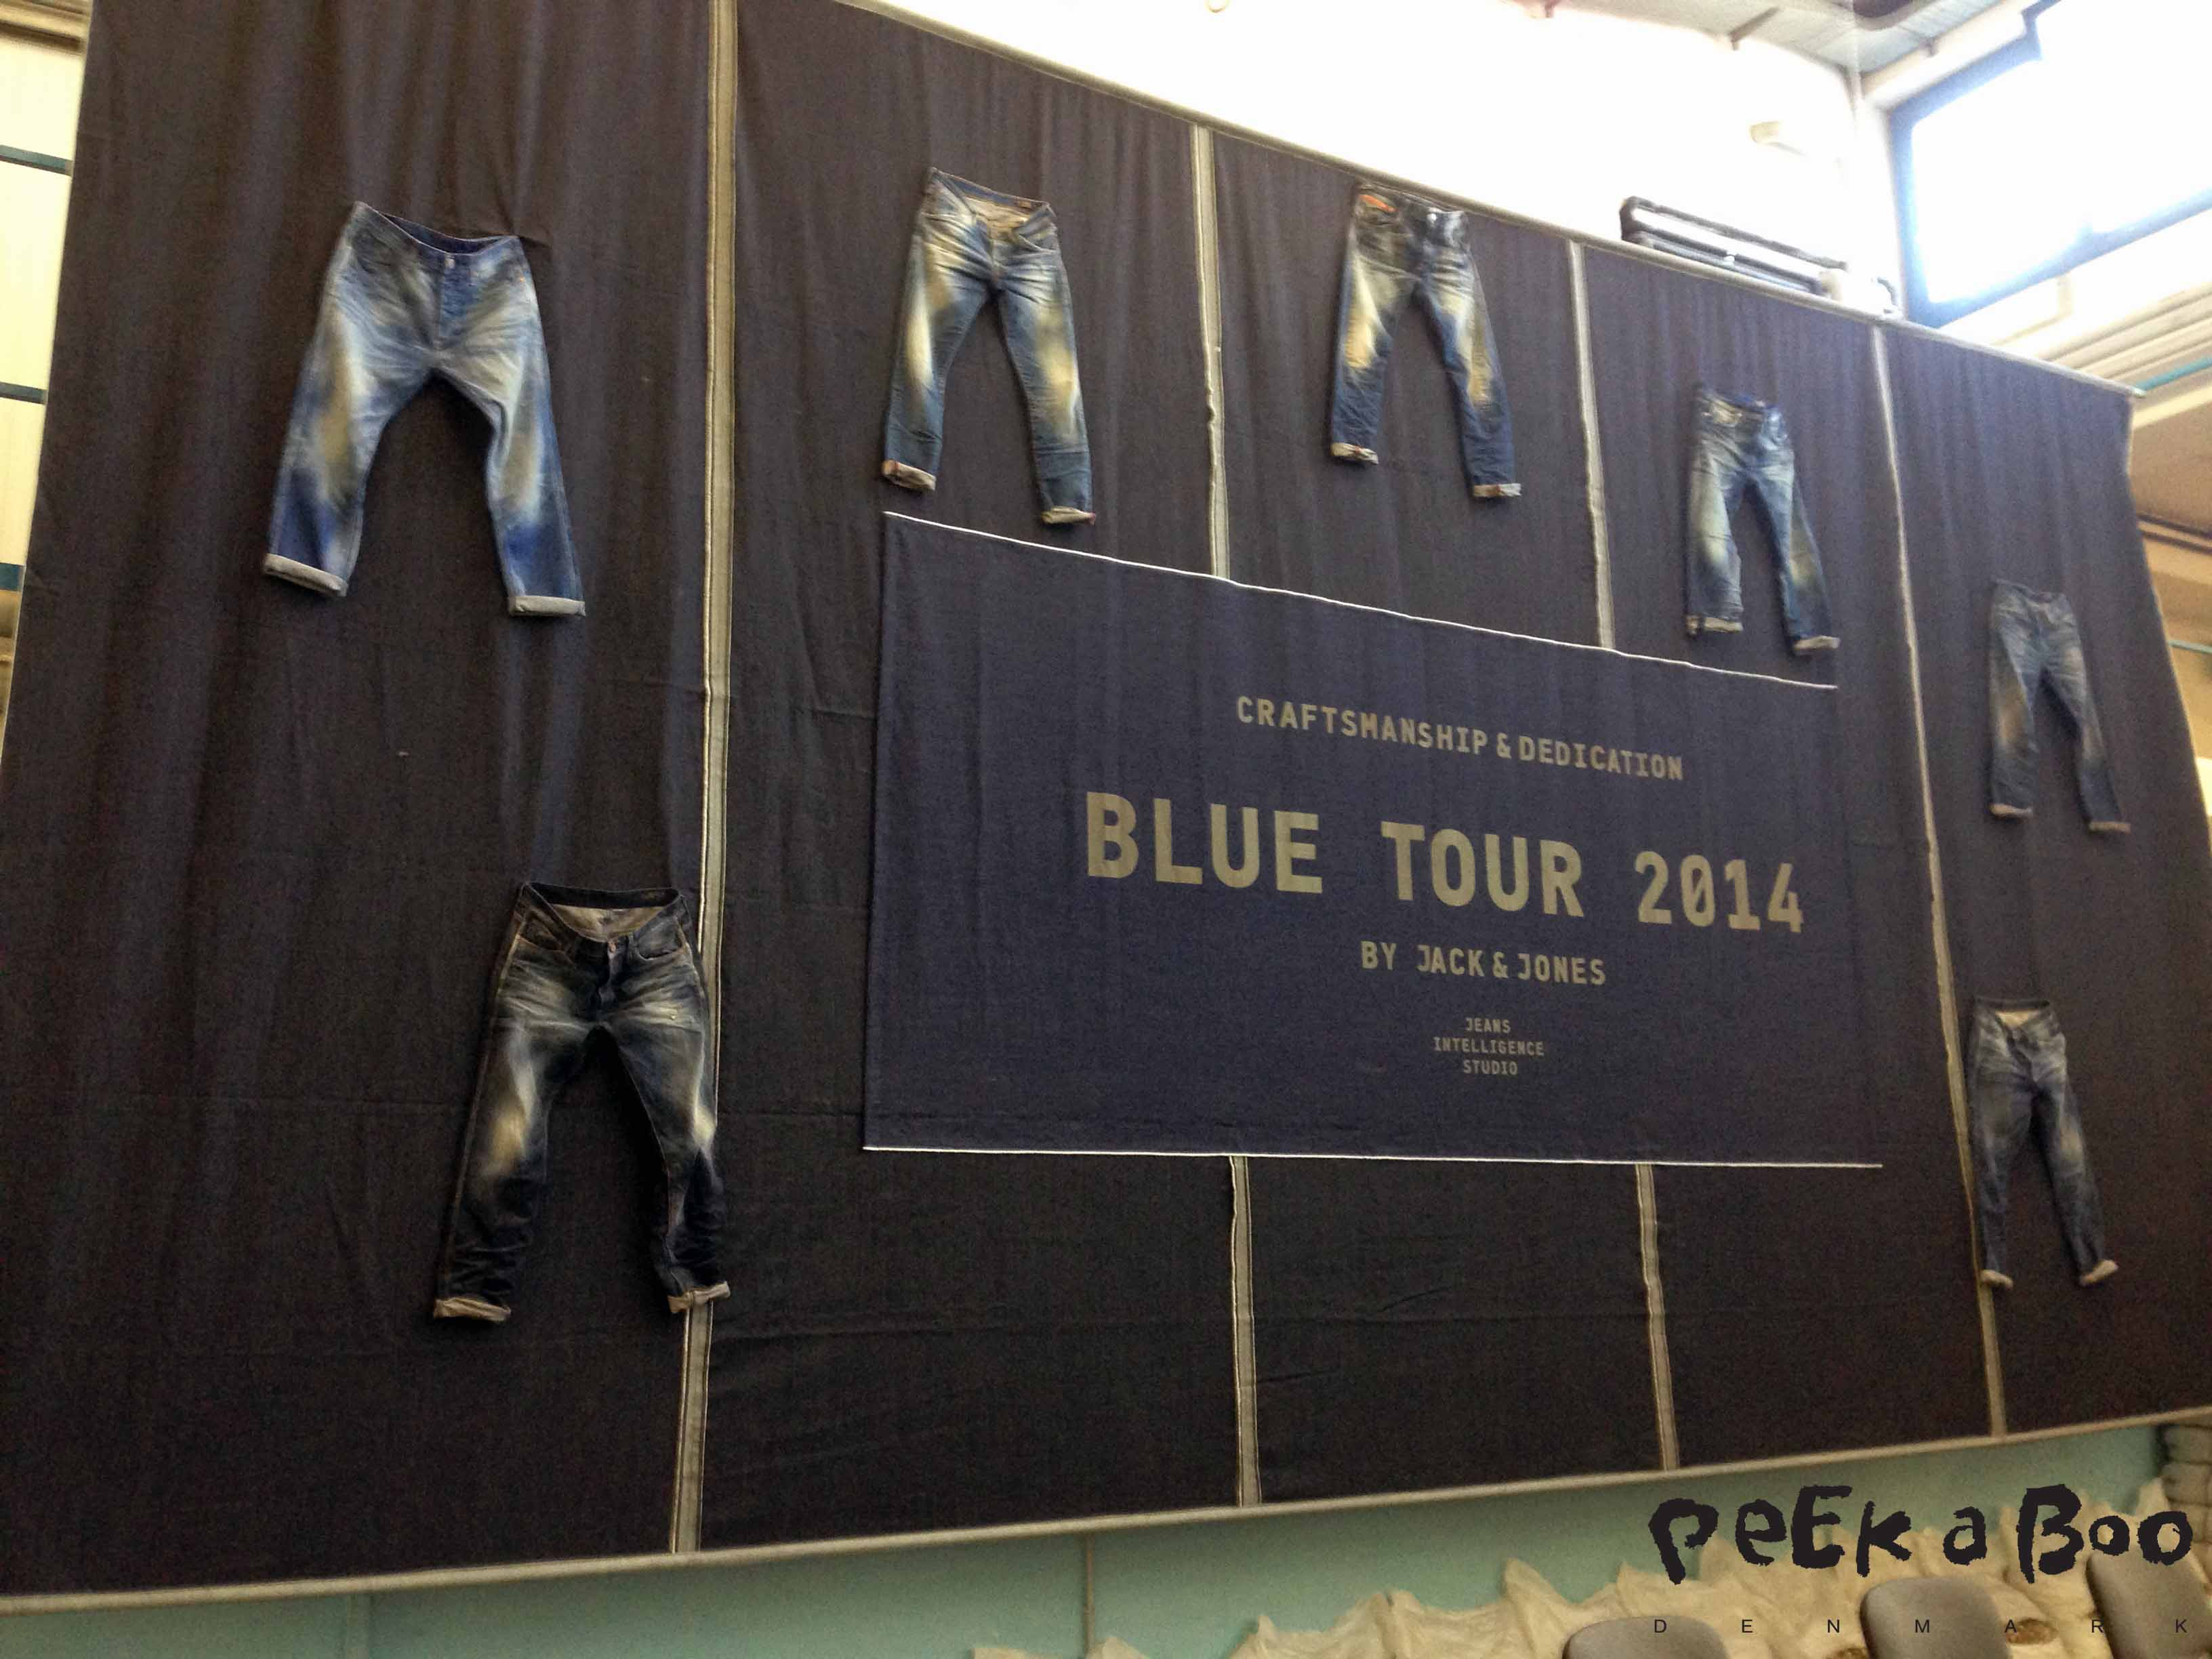 Jack & Jones blue tour 2014